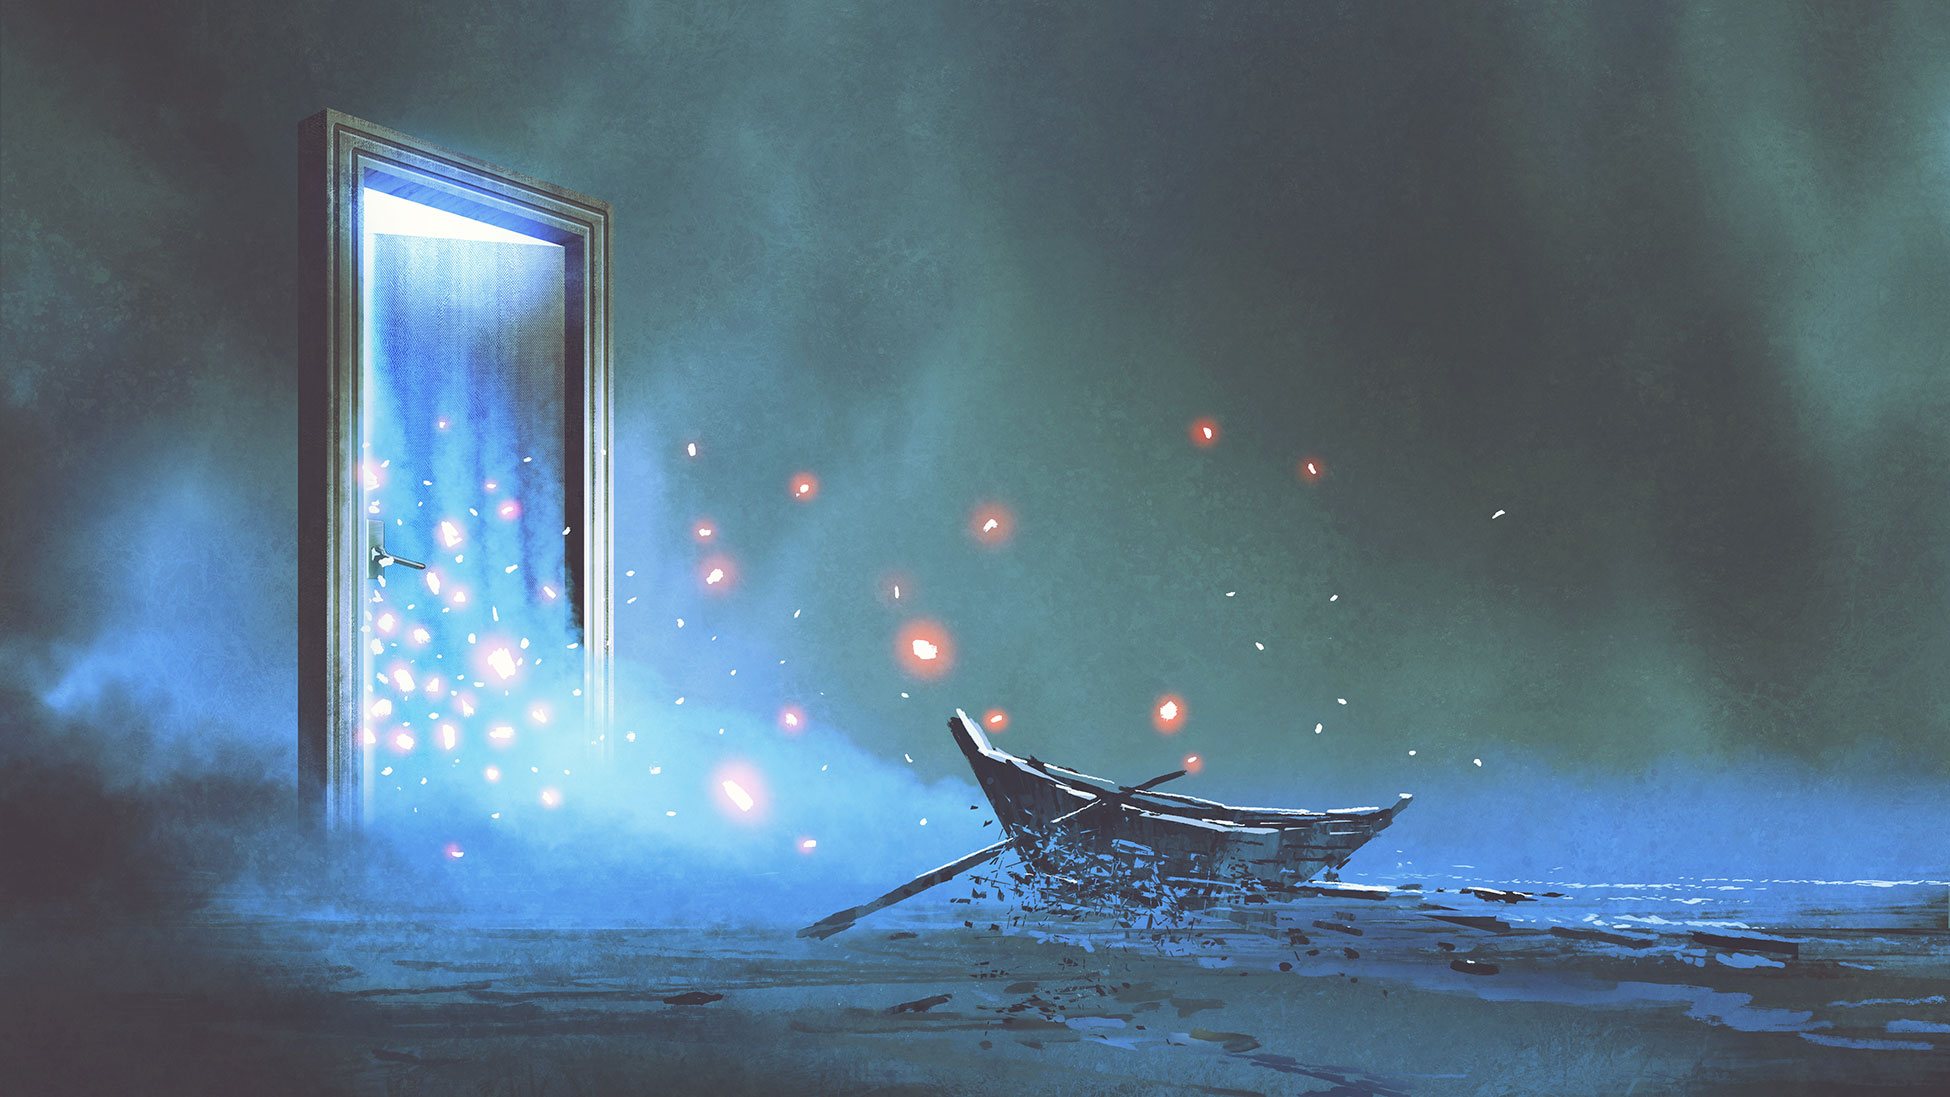 Illustration of boat and magical door